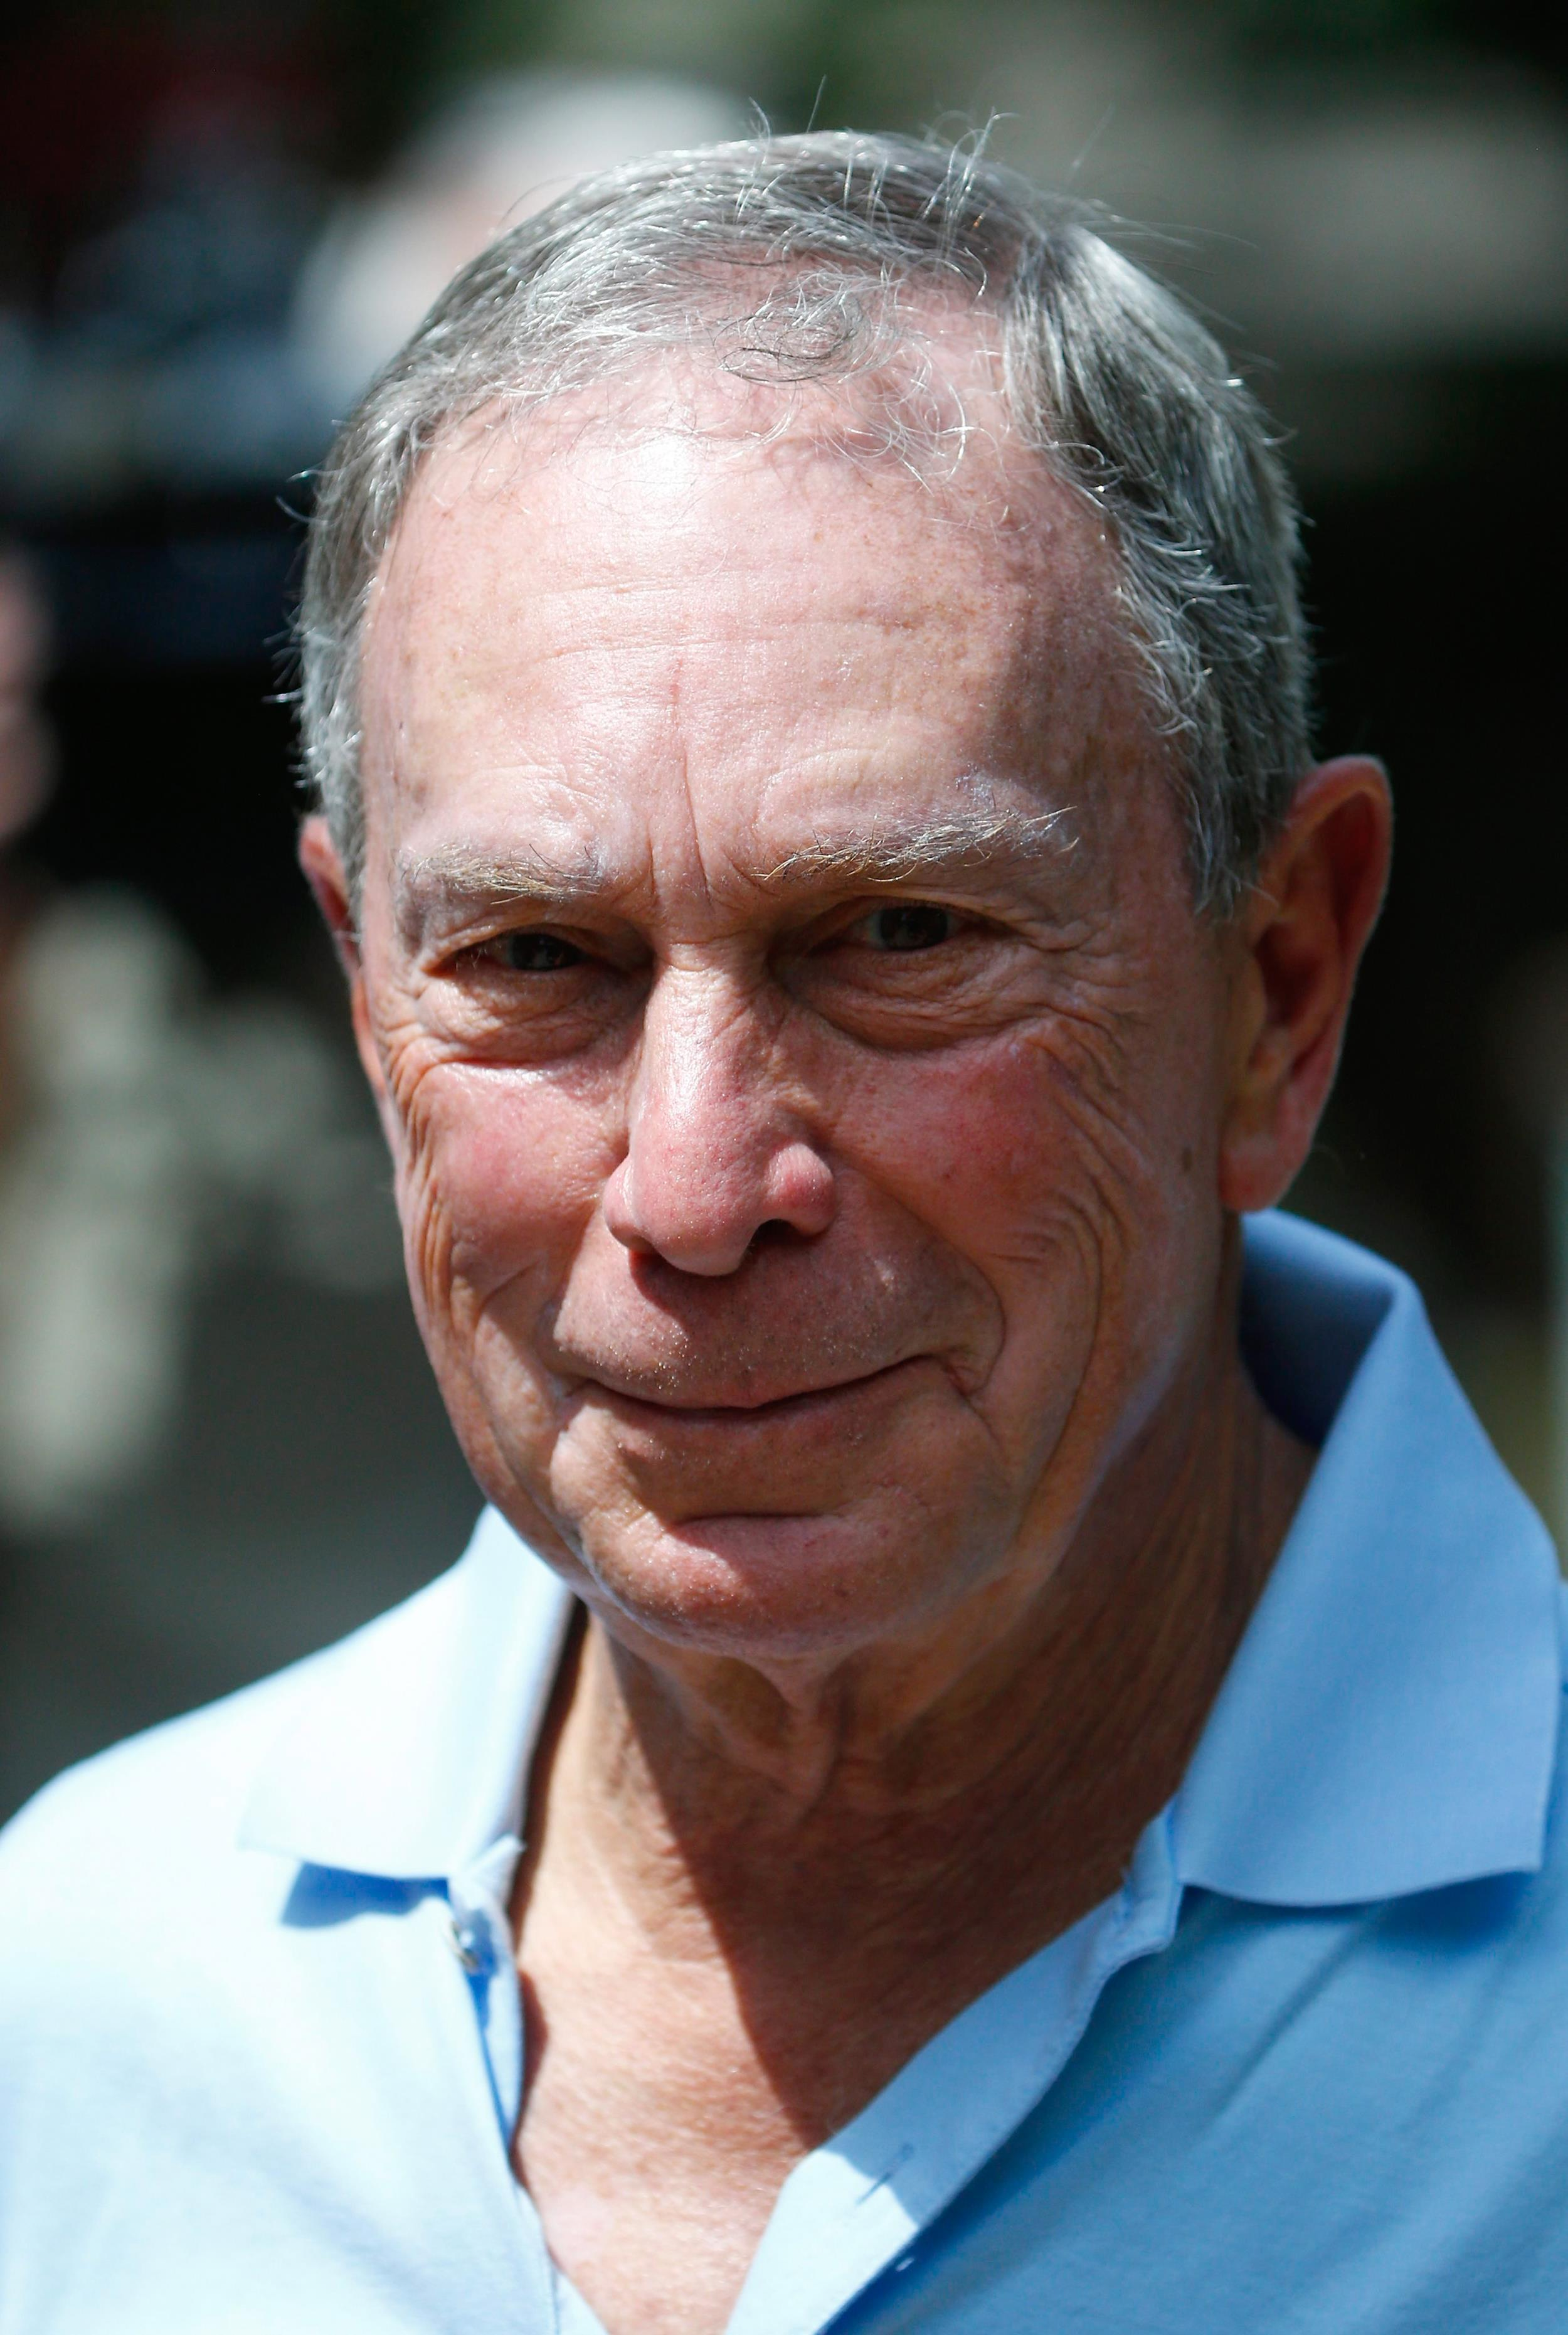 Bloomberg: It's Safe to Fly to Israel and I'll Prove It